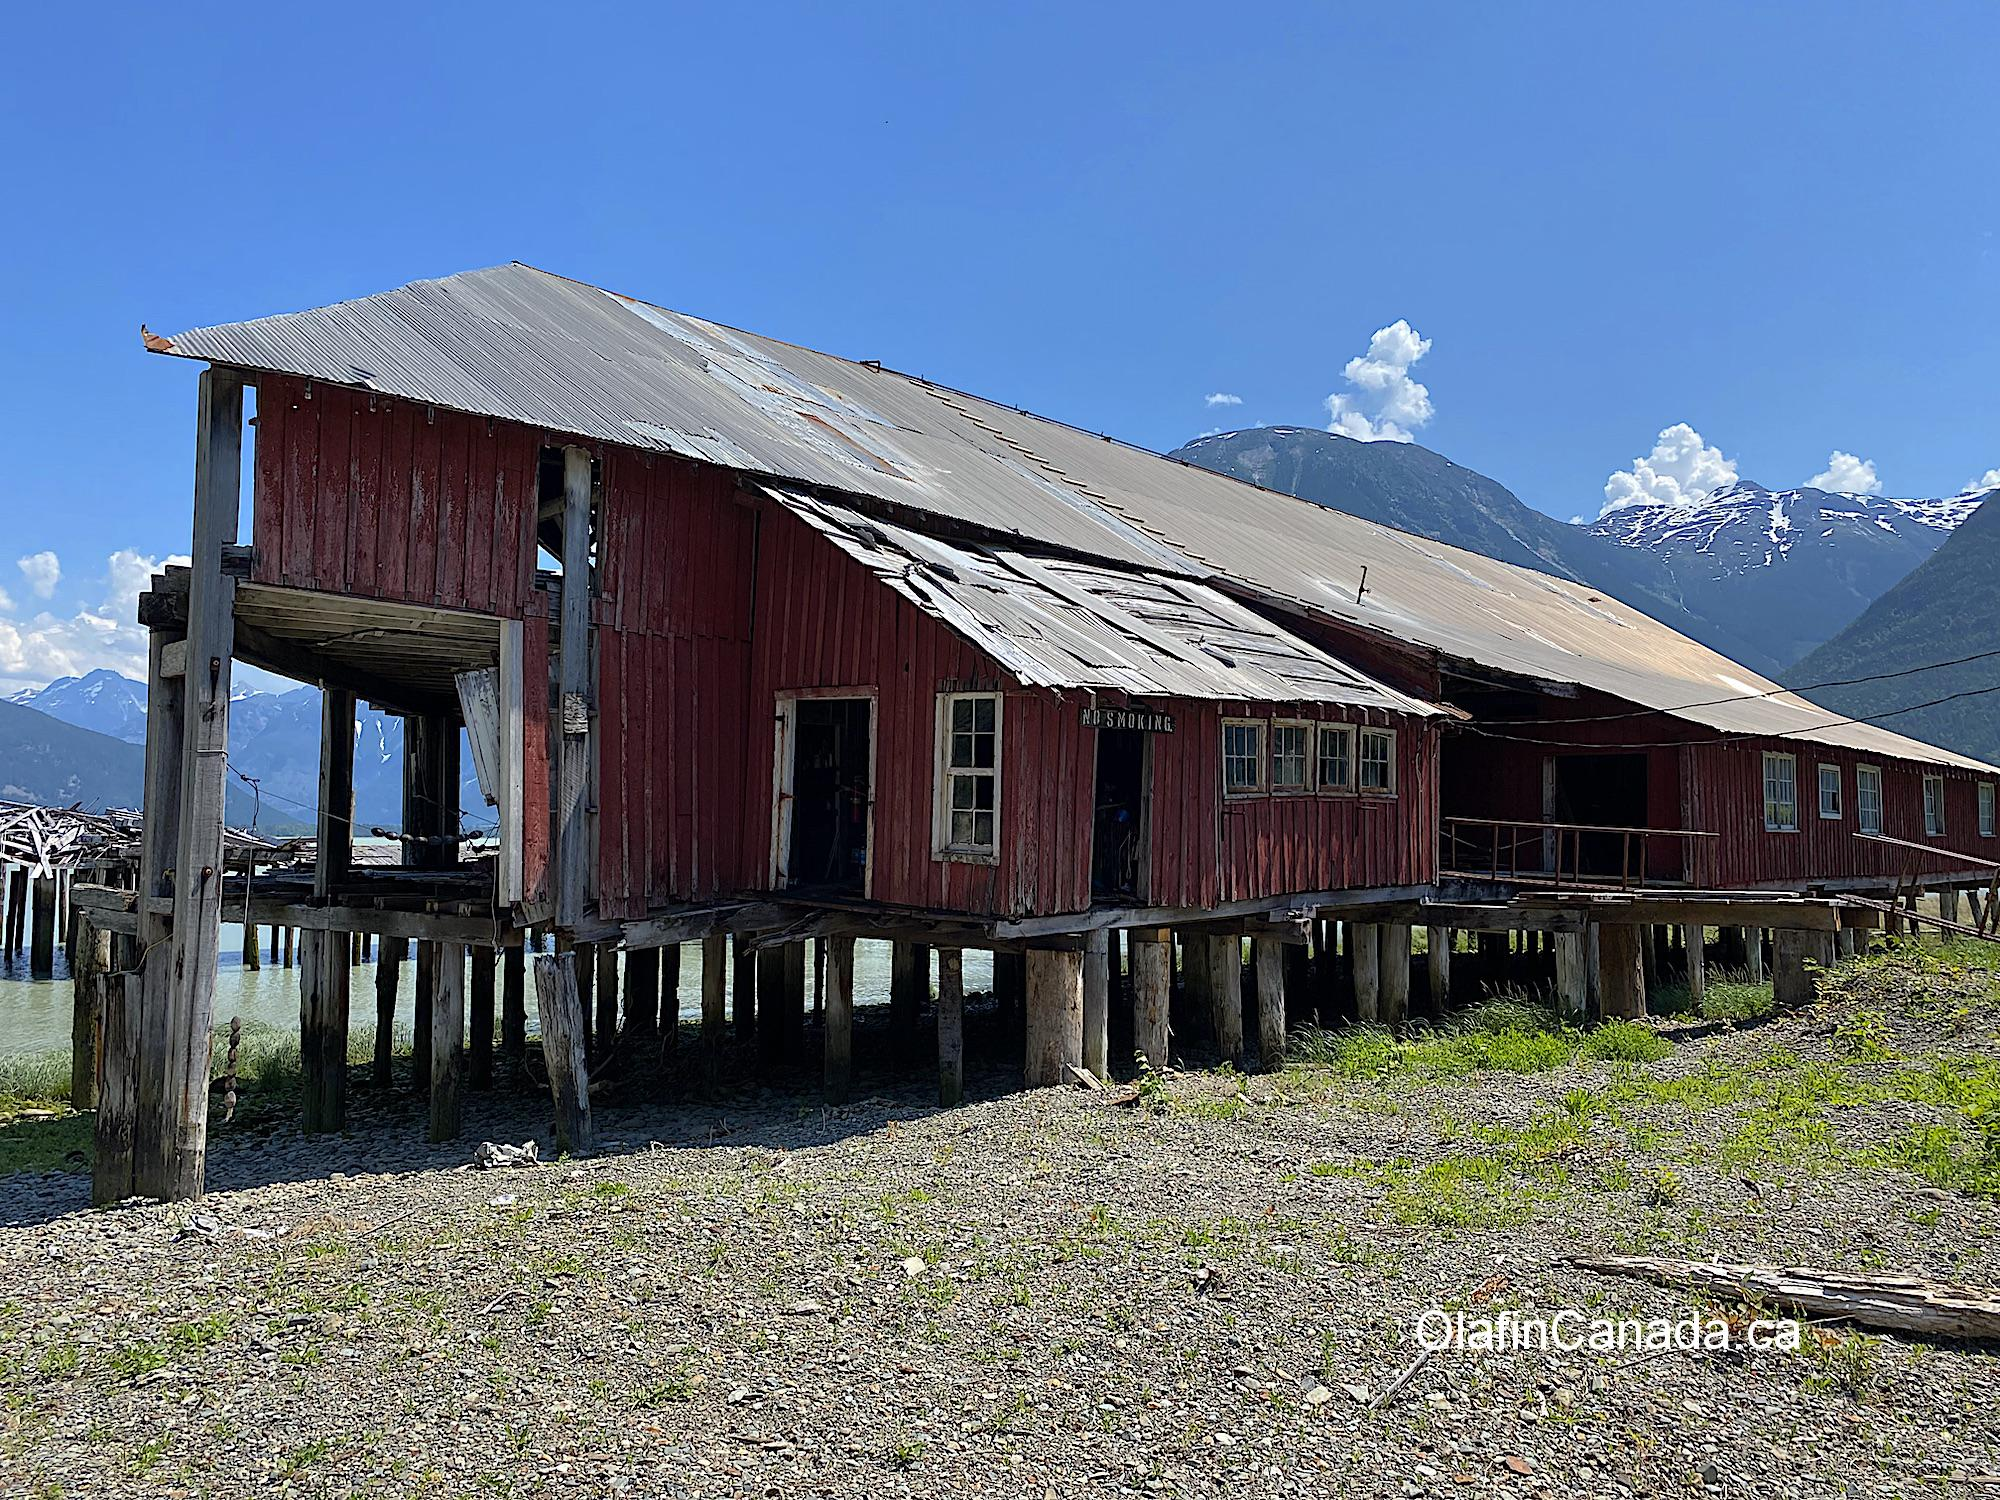 The cannery itself taken from the shore #olafincanada #britishcolumbia #discoverbc #abandonedbc #tallheocannery #bellacoola